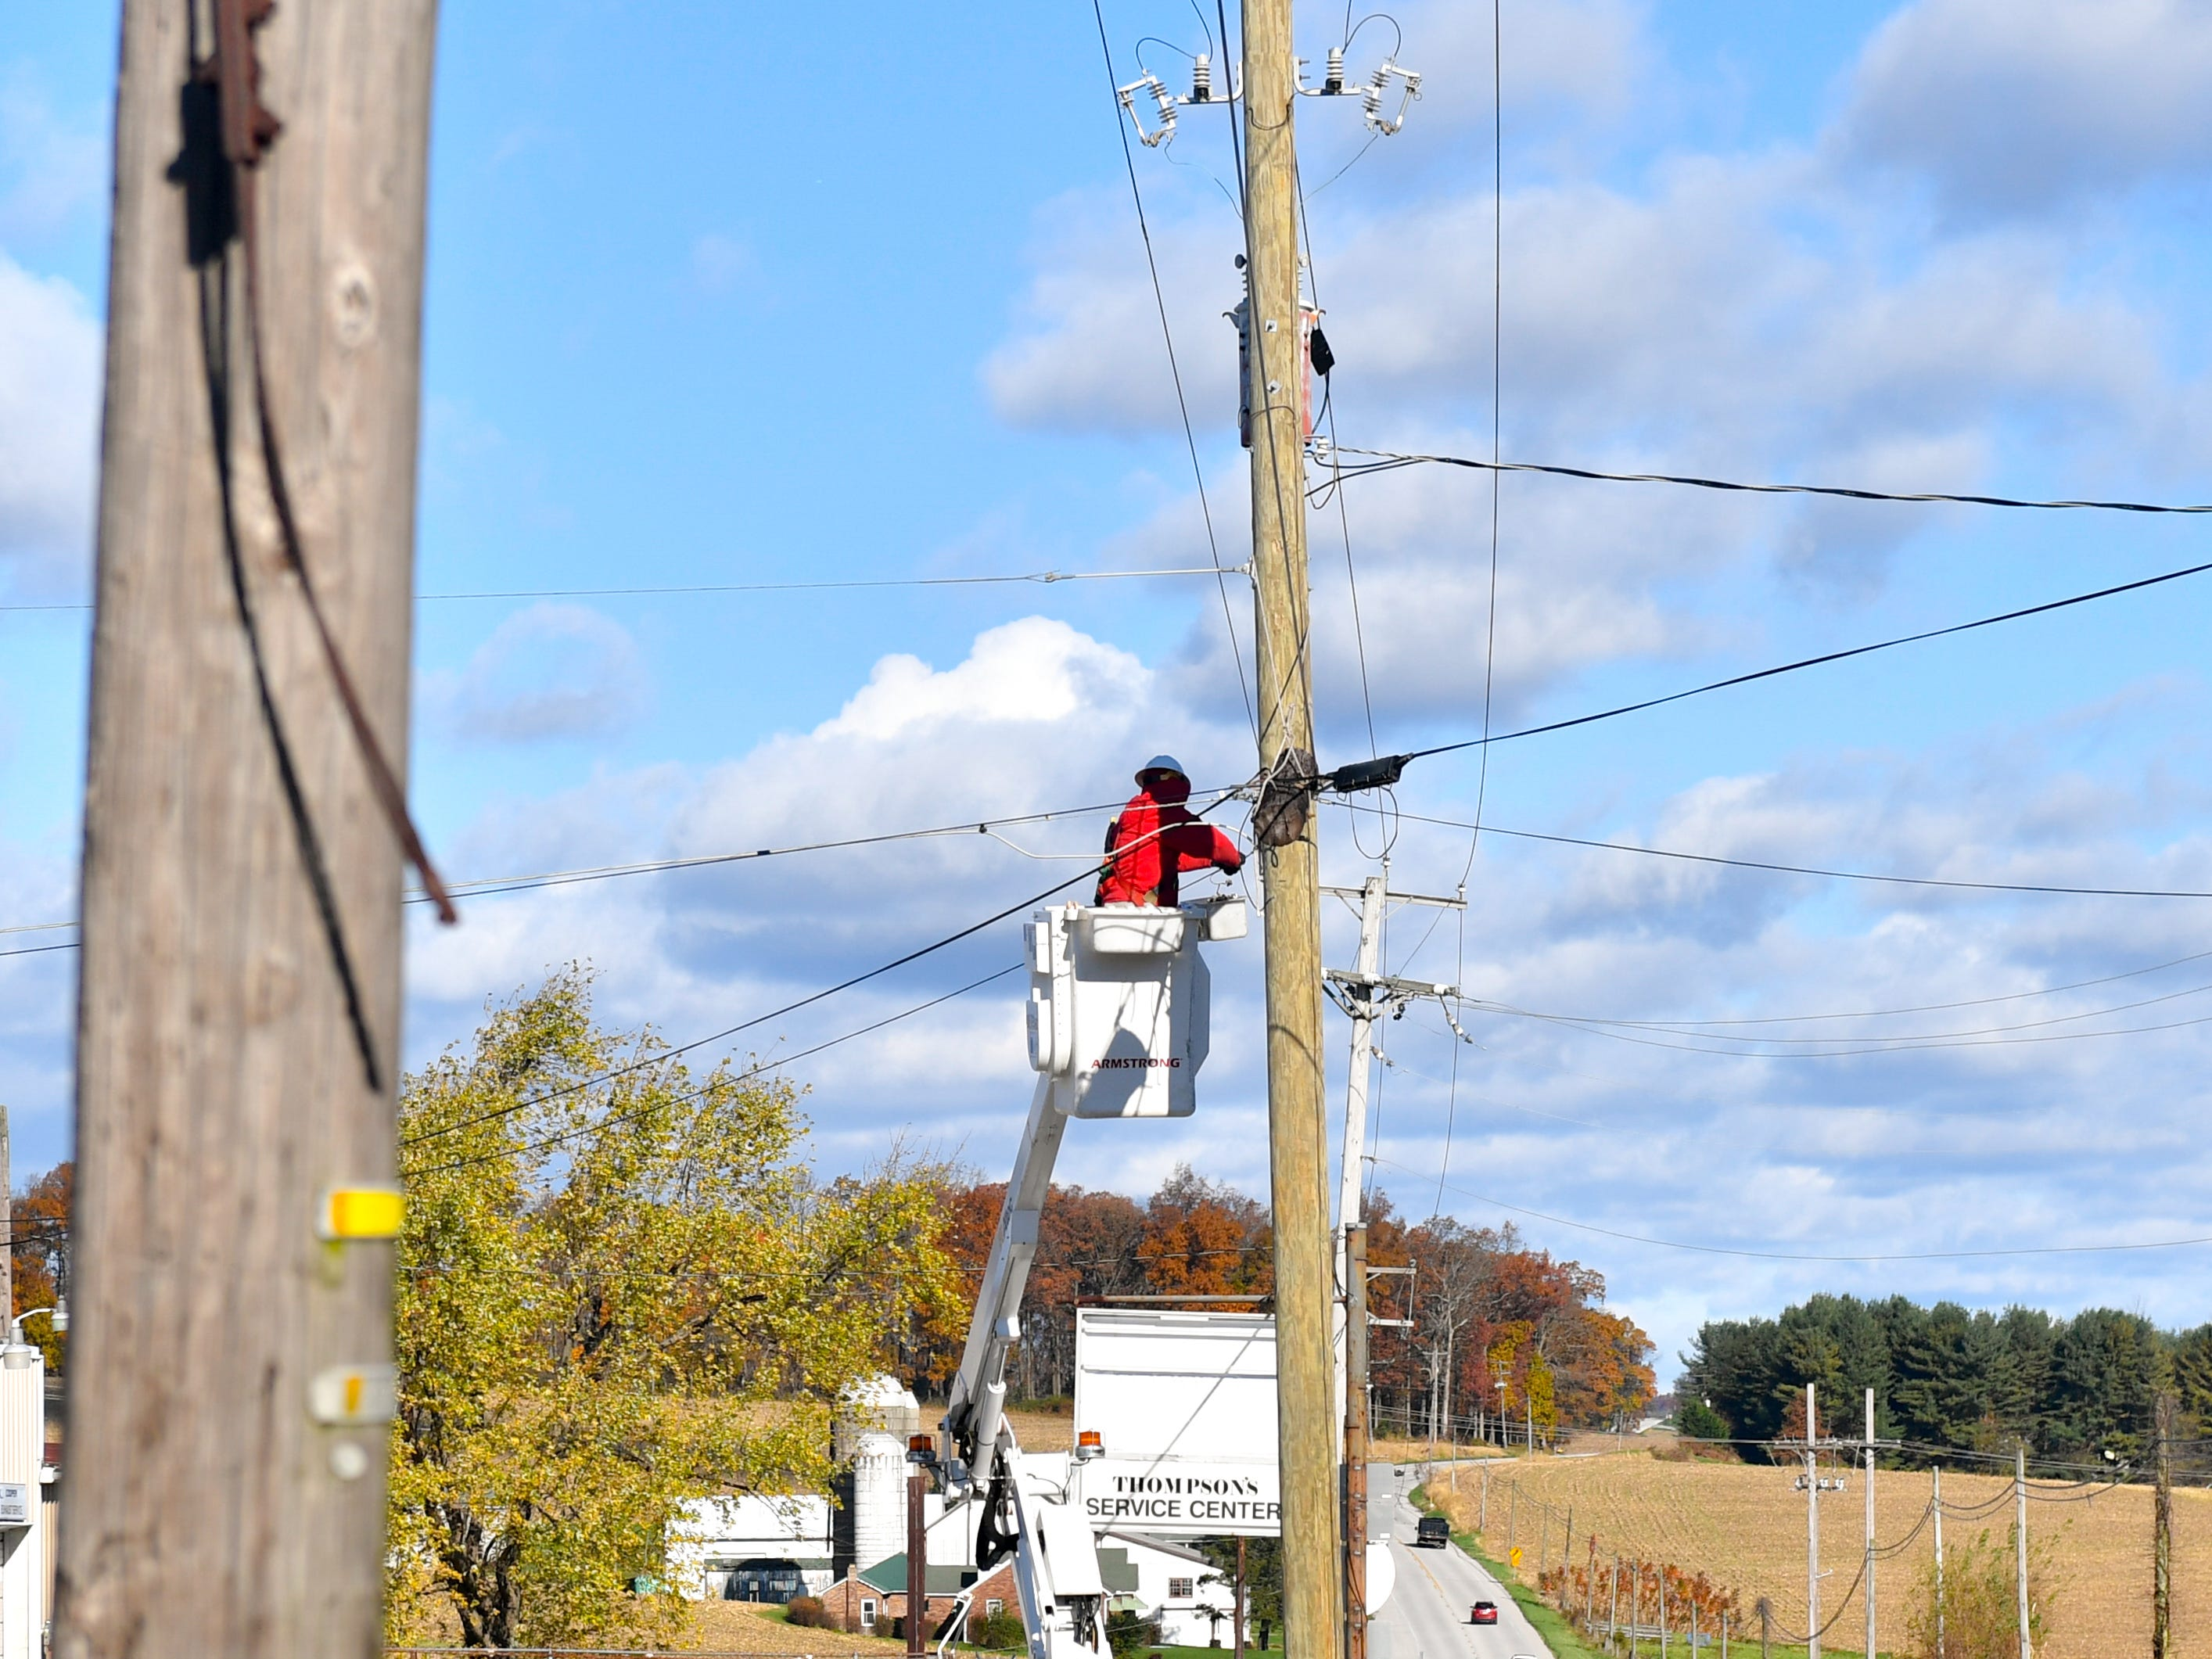 Electricians fix phone lines effected by the storm, November 3, 2018.